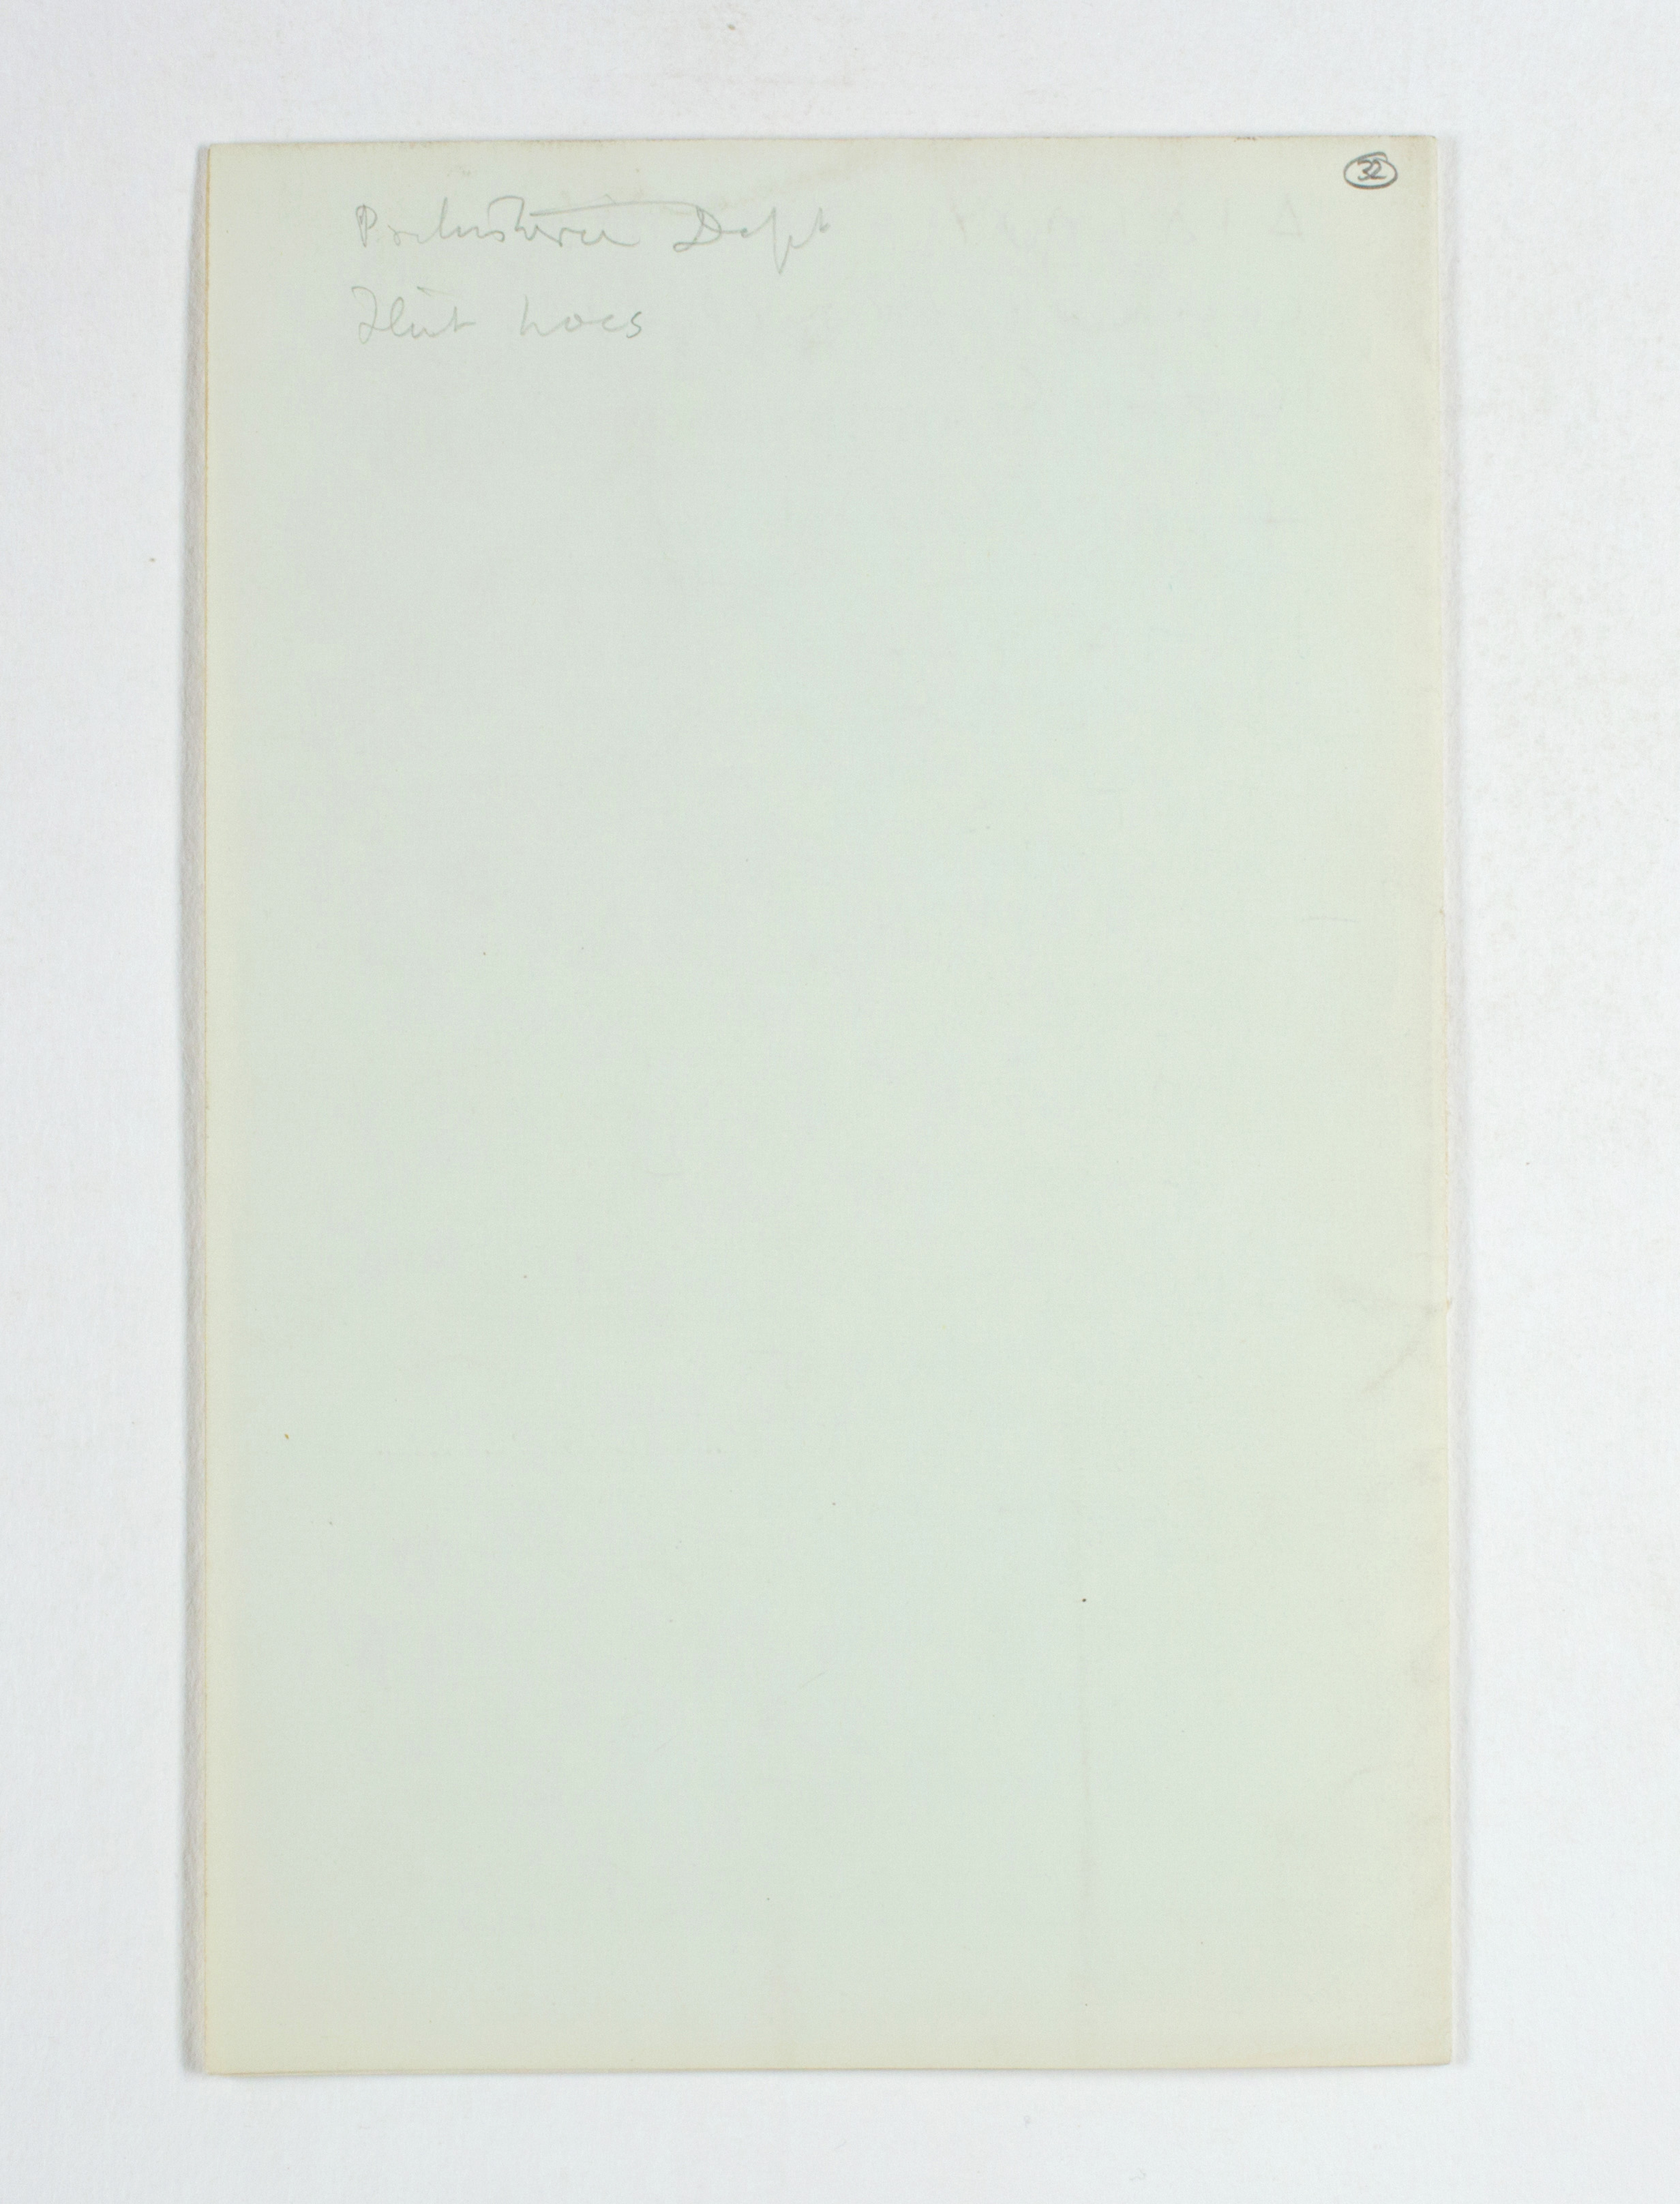 1923-24 Qau el-Kebir, Hemamieh Exhibition catalogue PMA/WFP1/D/27/32.9